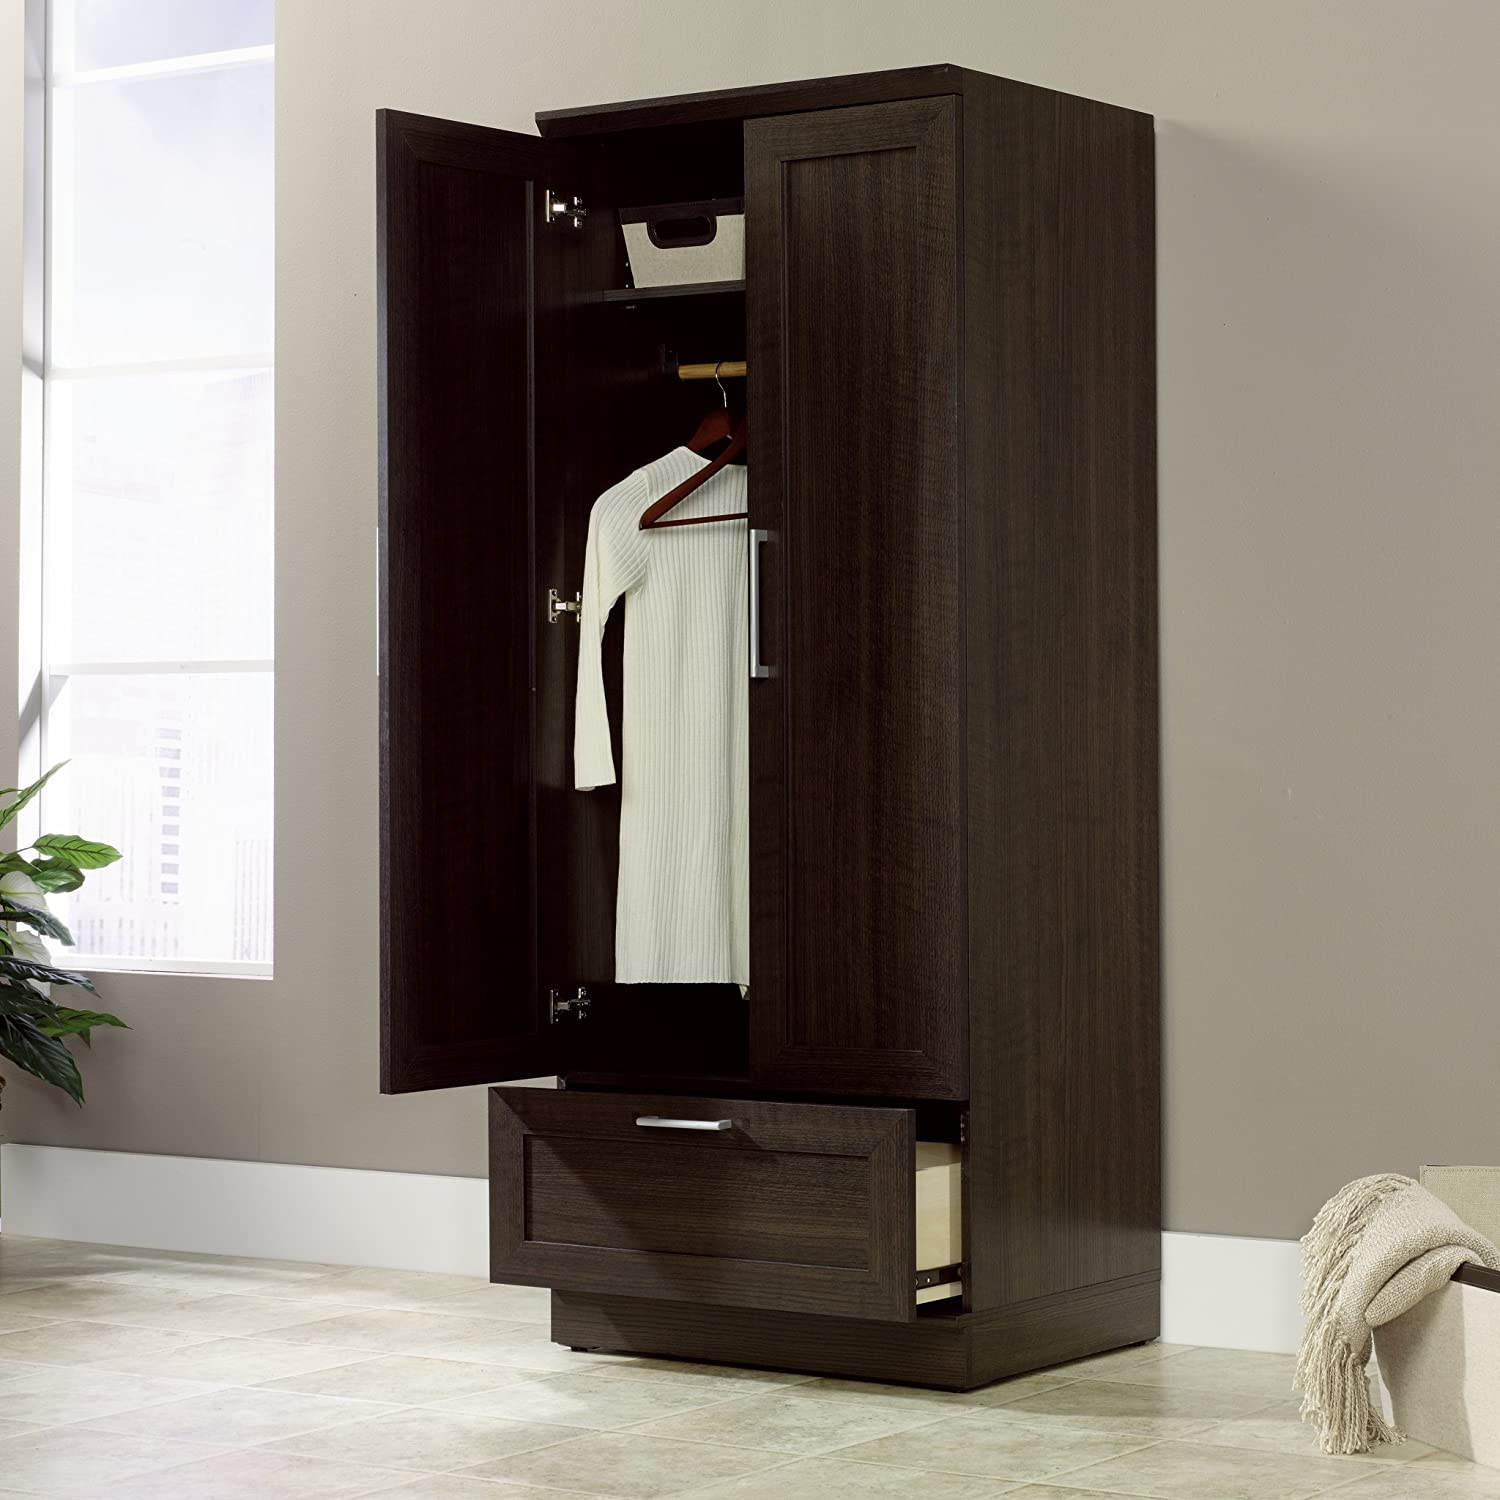 Marvelous photograph of Free Standing Wooden Wardrobe Closets GiftWorm.com with #271A14 color and 1500x1500 pixels